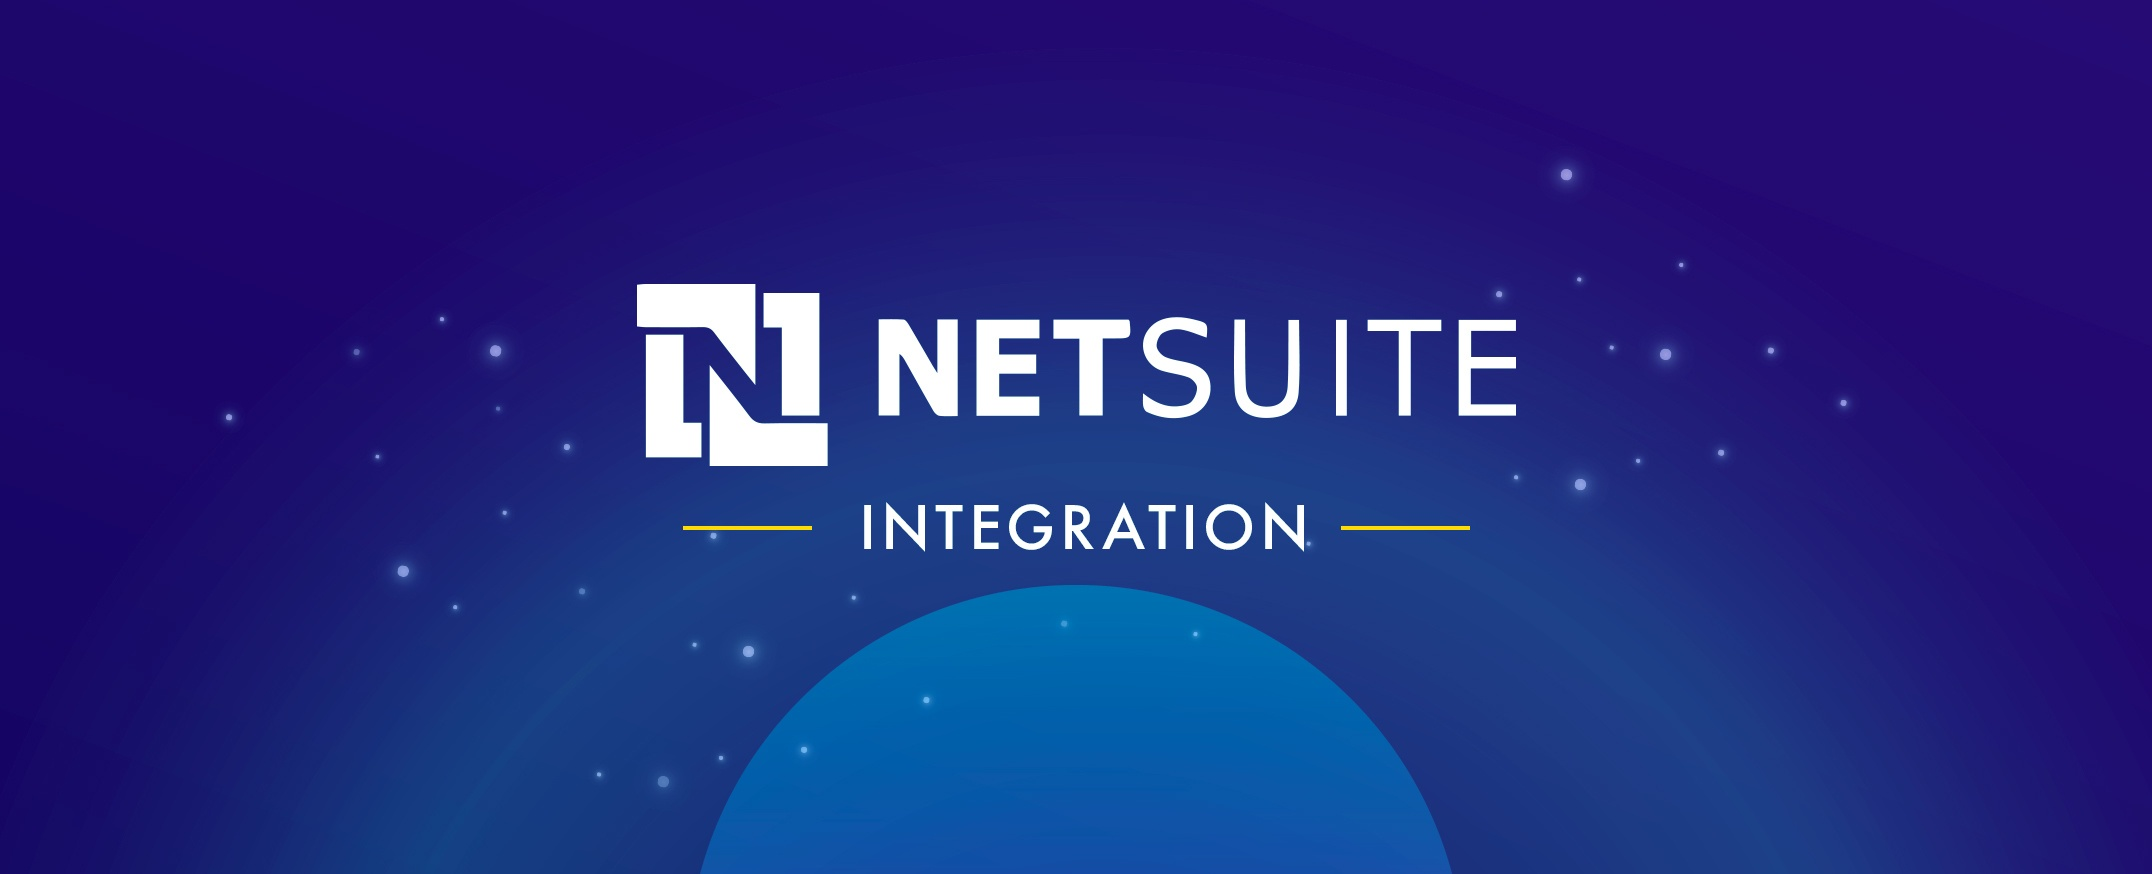 Avoid-Challenges-with-NetSuite-Integration